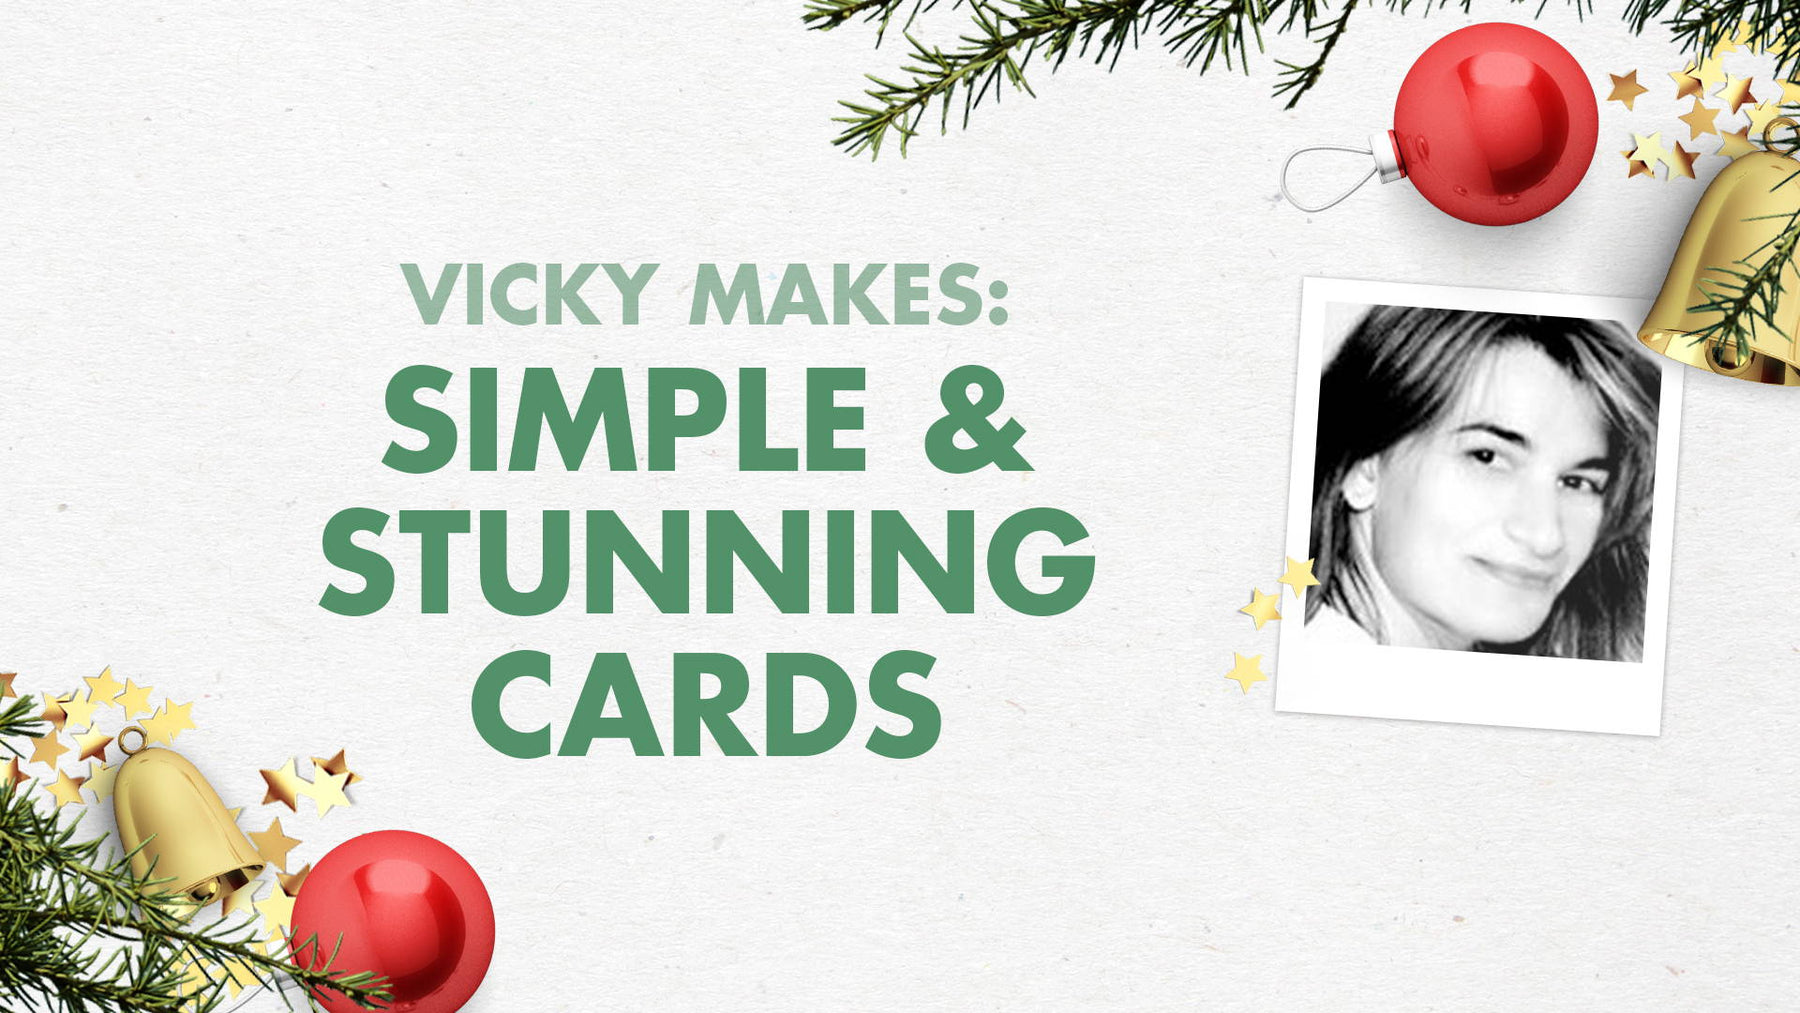 Tonic Craft Kit 11 - Festive Wishes Simply Stunning Cards - Vicky Papaioannou